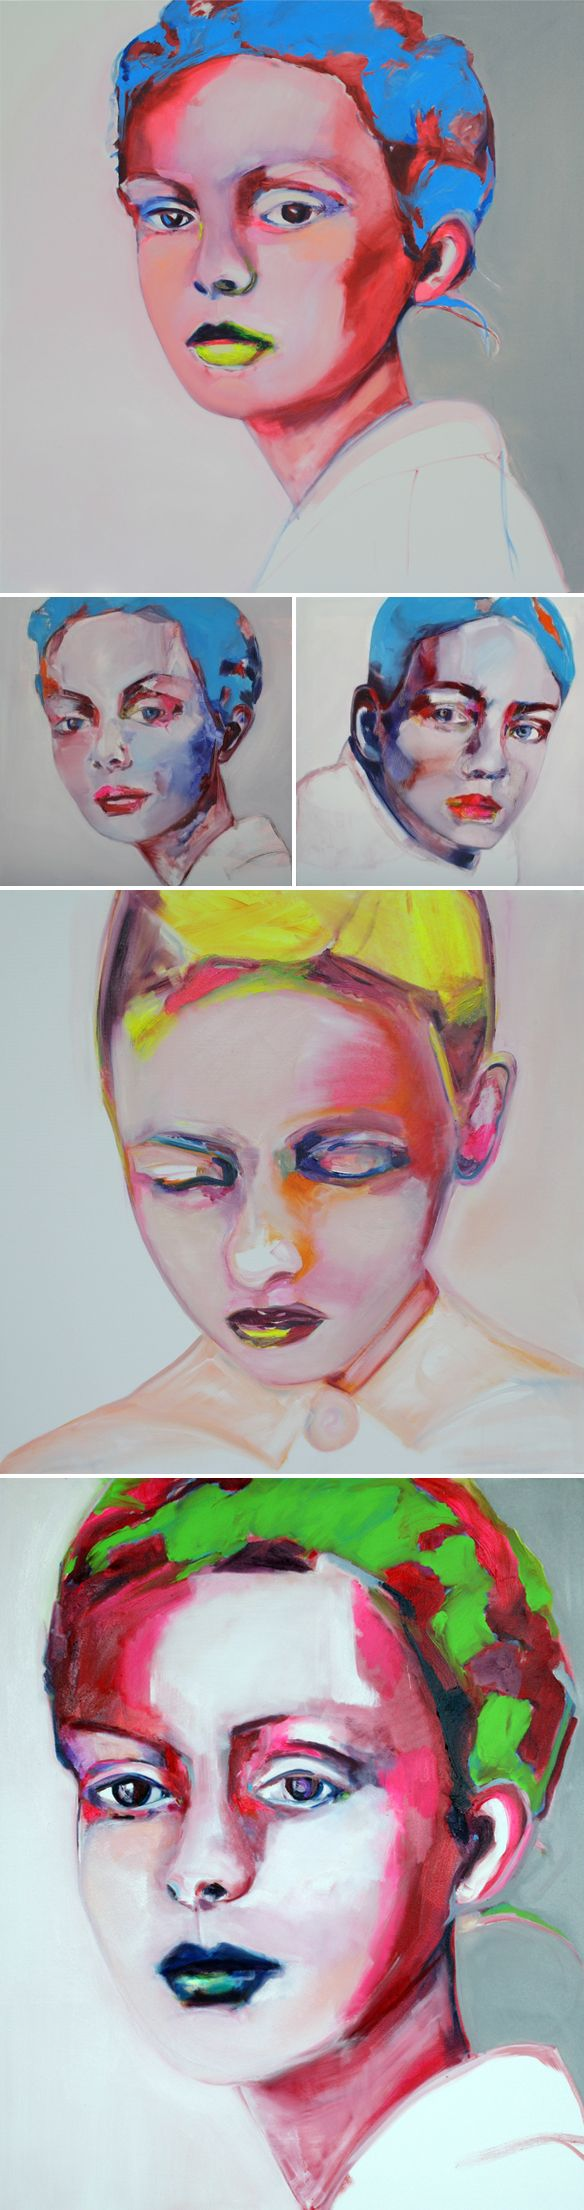 strange, vibrant, beautiful! These large-scale blue & yellow lipped faces are the work of Patricia Derks via the jealous curator